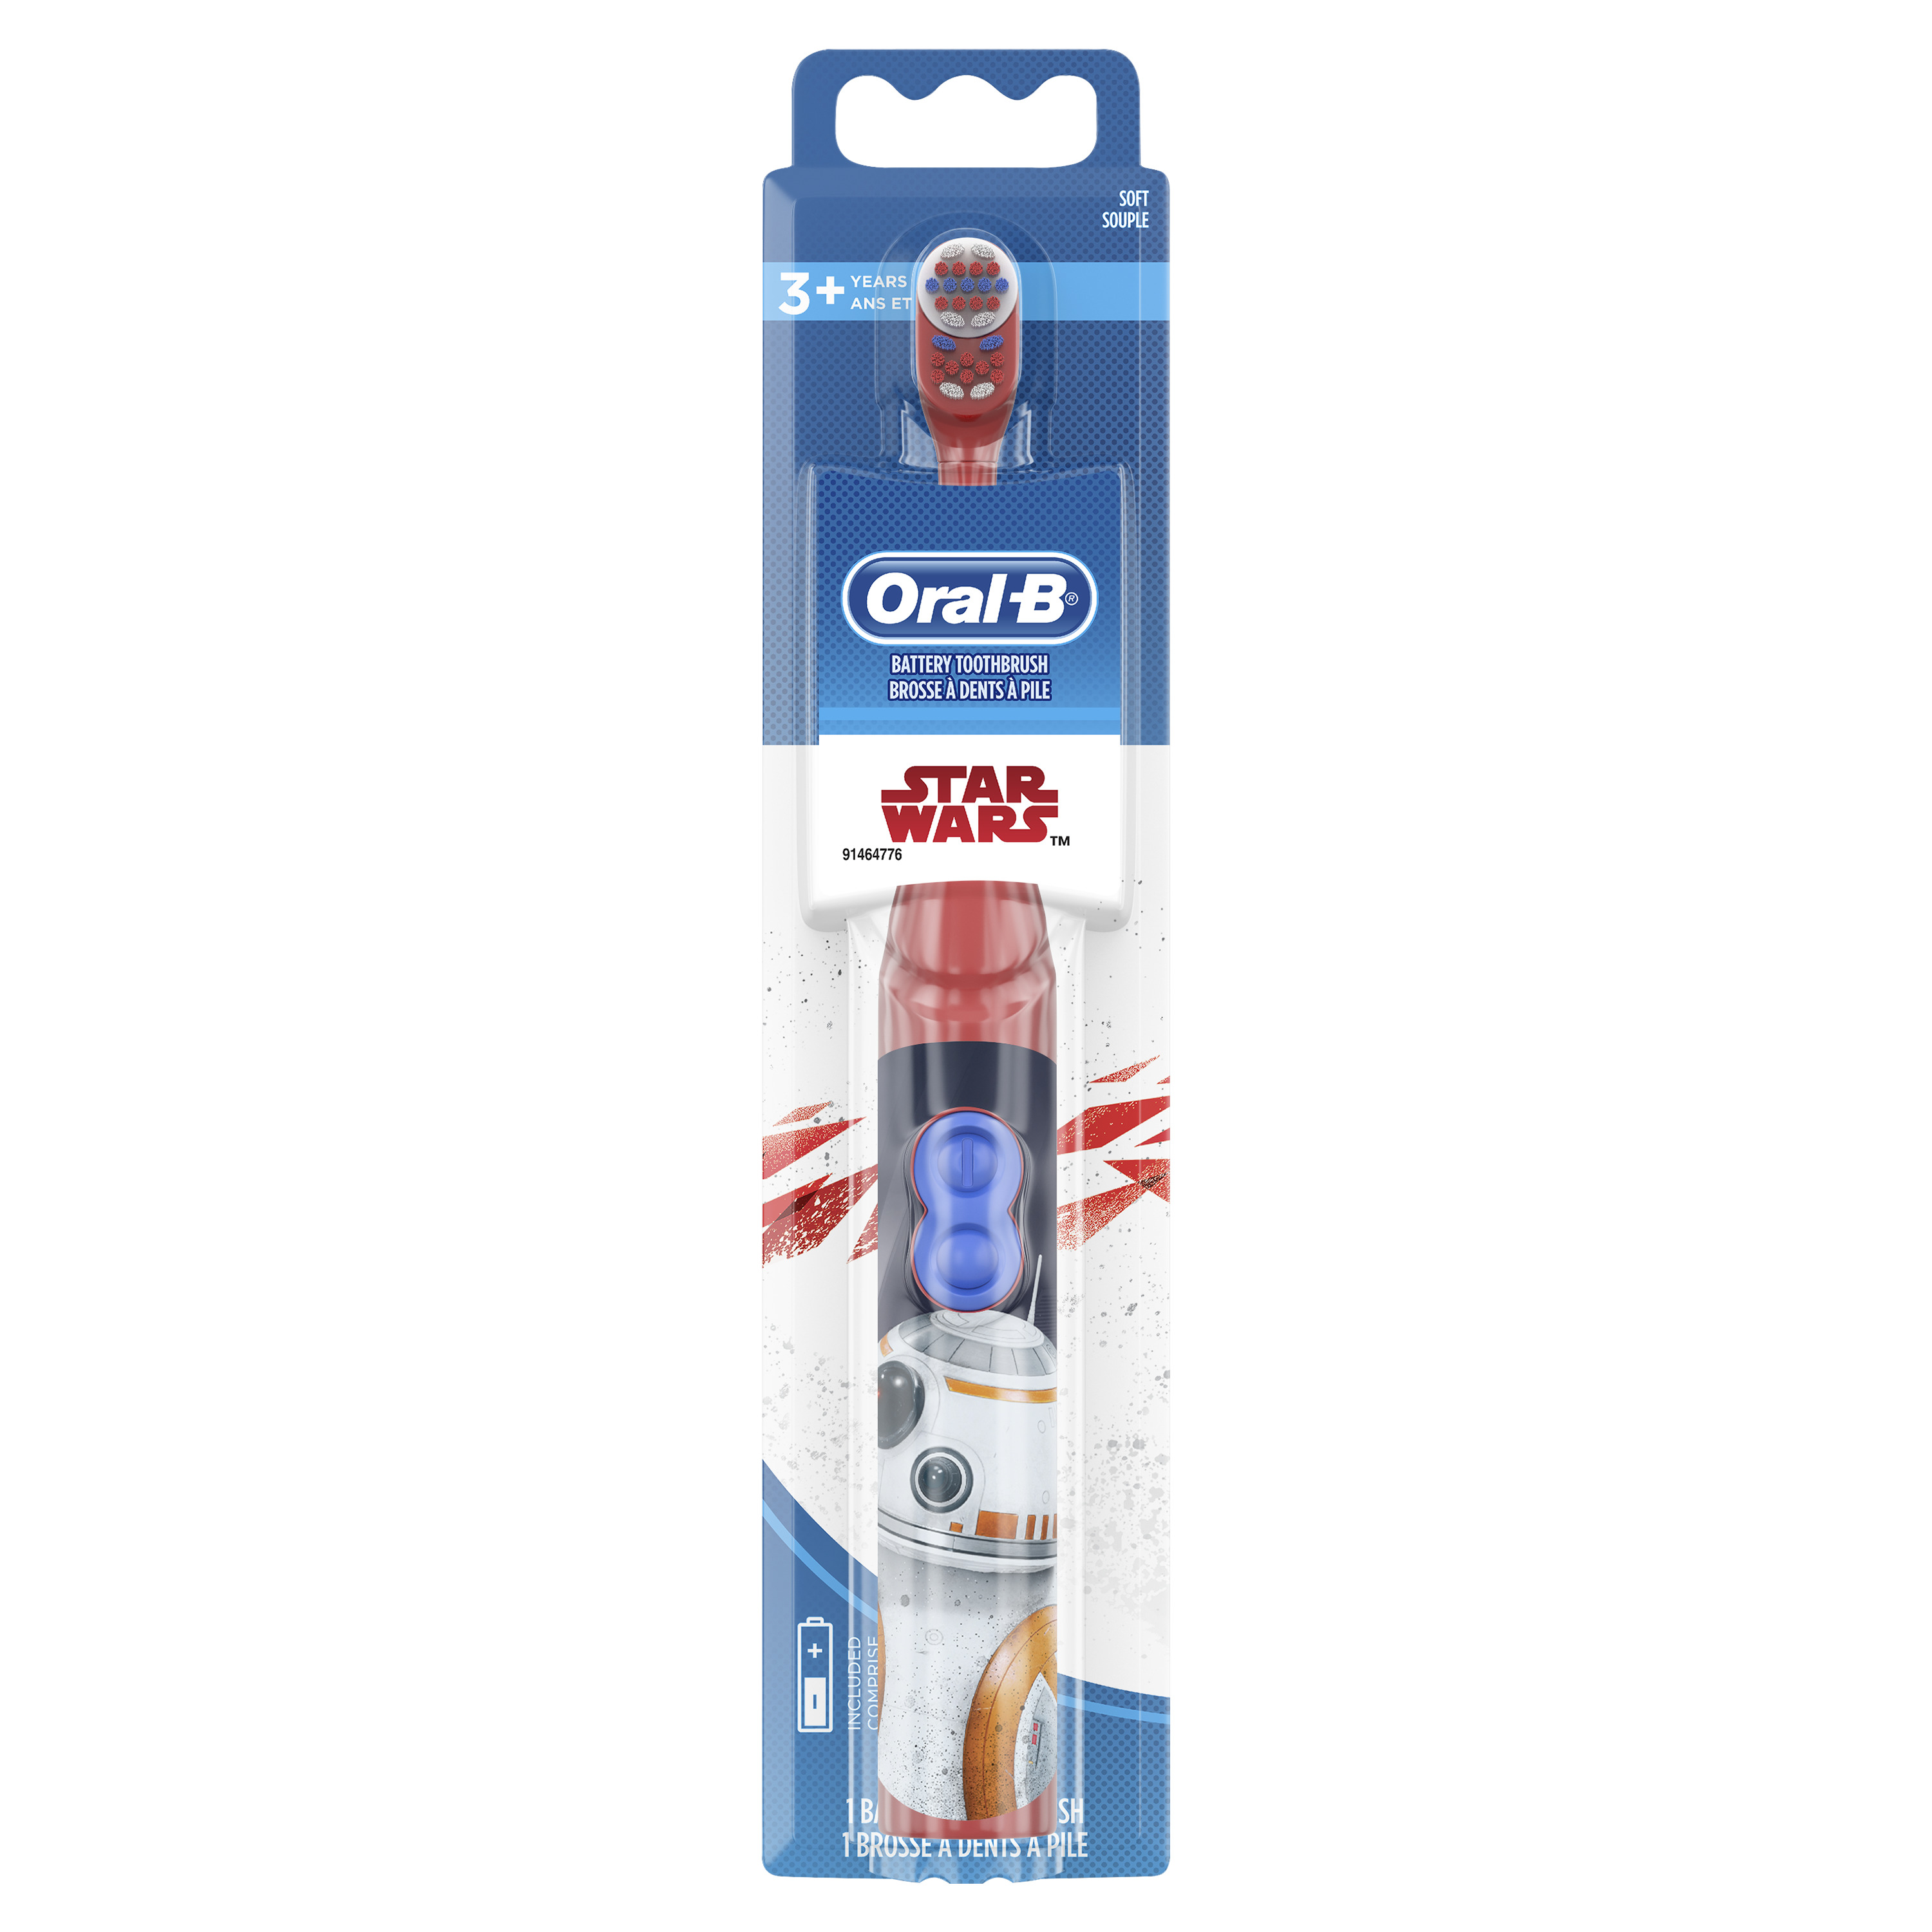 New Last Jedi Oral-B Electric Toothbrush now available!